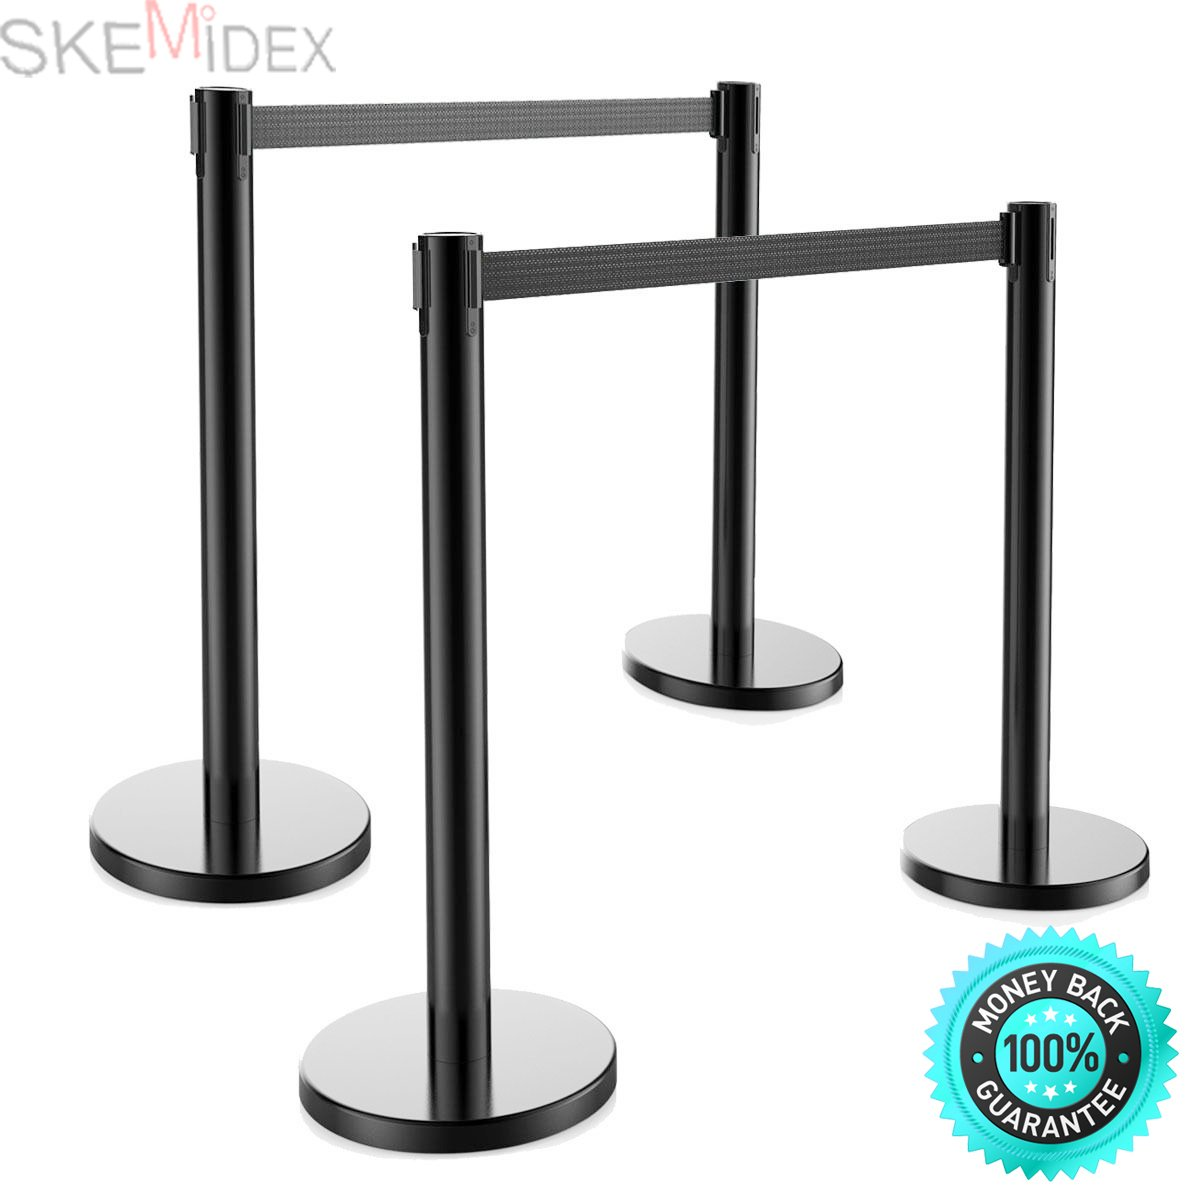 SKEMiDEX---4pcs Retractable Belt Stanchion, 2Sets, Black Belt, Crowd Control Barrier. Retractable belt stanchions are widely applied in shopping centre, hotel, bank, hospital, station, airport